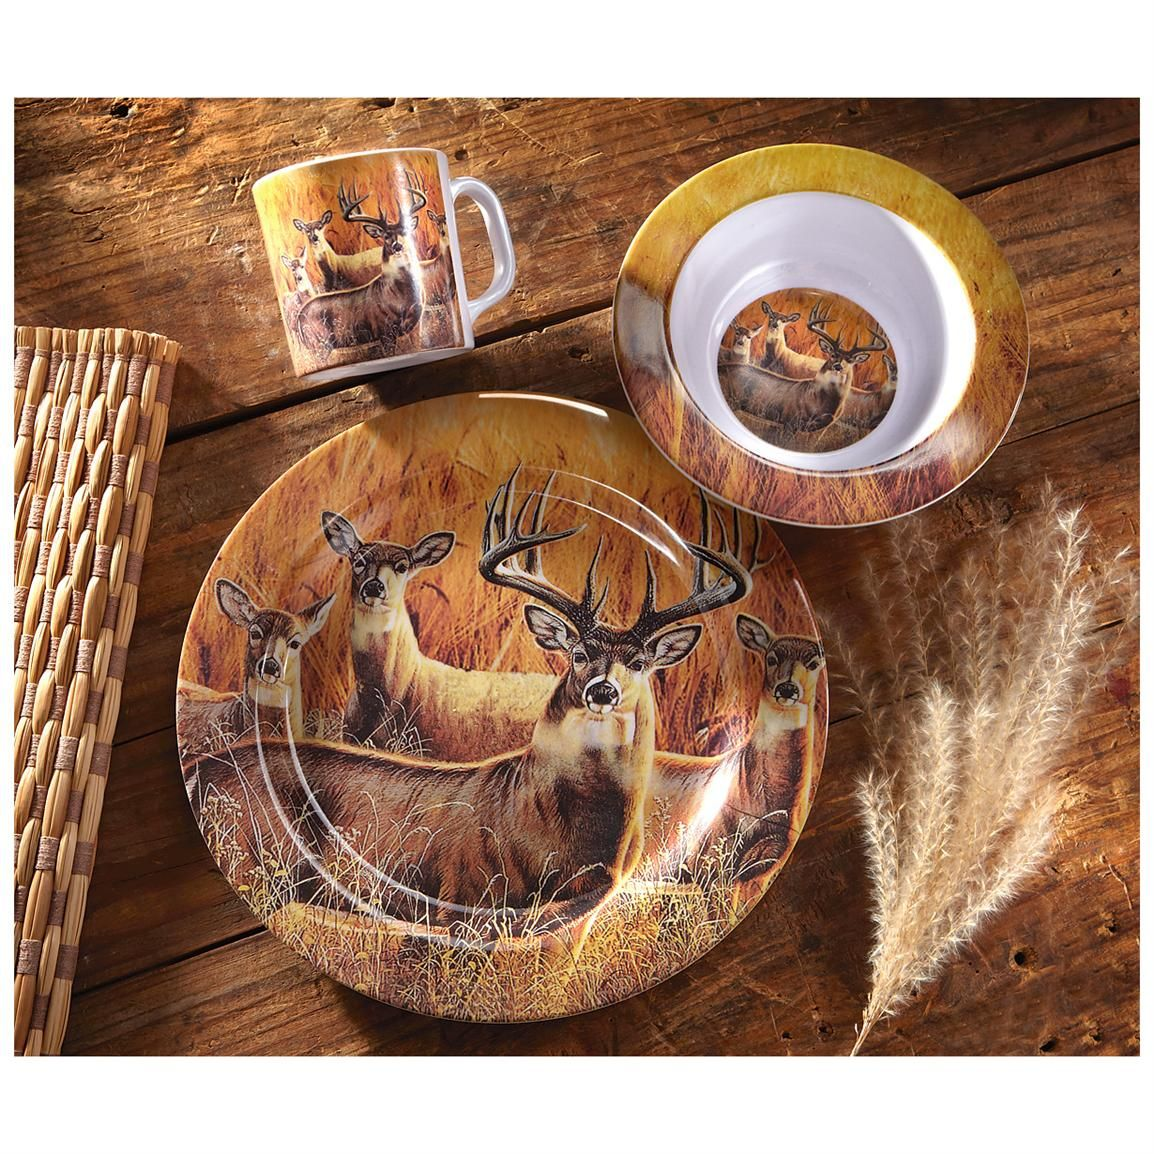 CASTLECREEK™ 12 - Pc. Whitetail Melamine Dinnerware Set PRICED LESS! & CASTLECREEK™ 12 - Pc. Whitetail Melamine Dinnerware Set PRICED LESS ...